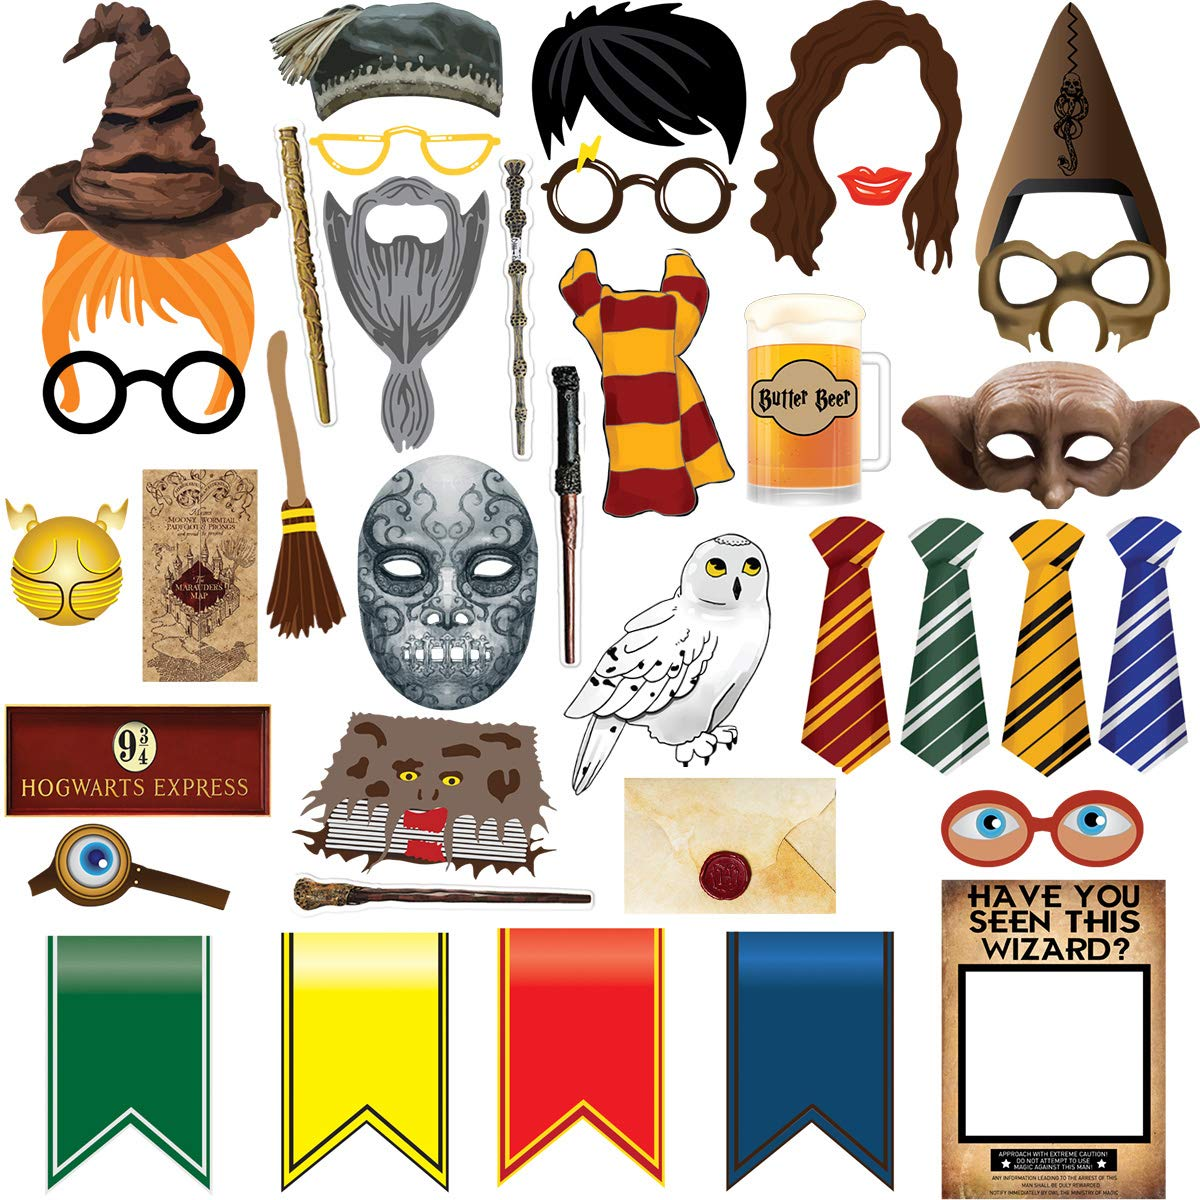 TMCCE 38pcs Magical Wizard Party Photo Booth Props,Wizard Castle Party Photo Booth Props, Magical Wizard School Party Favors Supplies For Kids Children Birthday Party Decoration